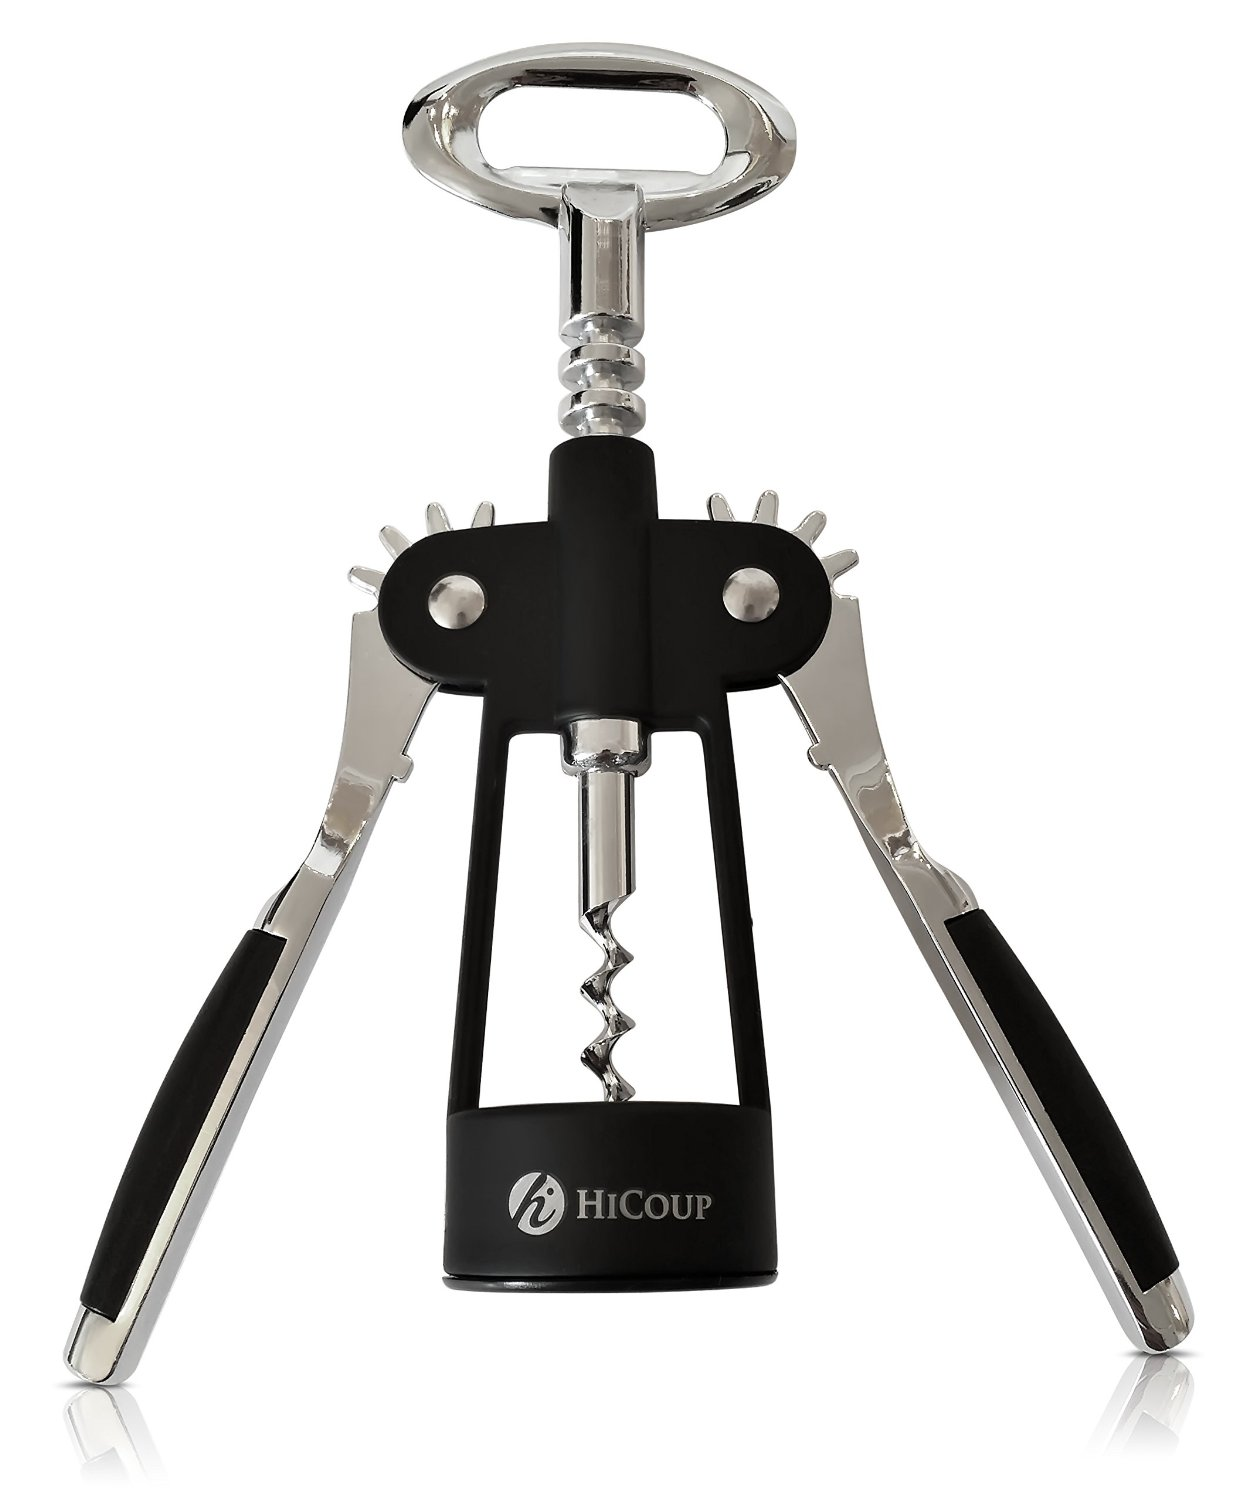 hicoup waiter 39 s friend corkscrew wine bottle openers. Black Bedroom Furniture Sets. Home Design Ideas